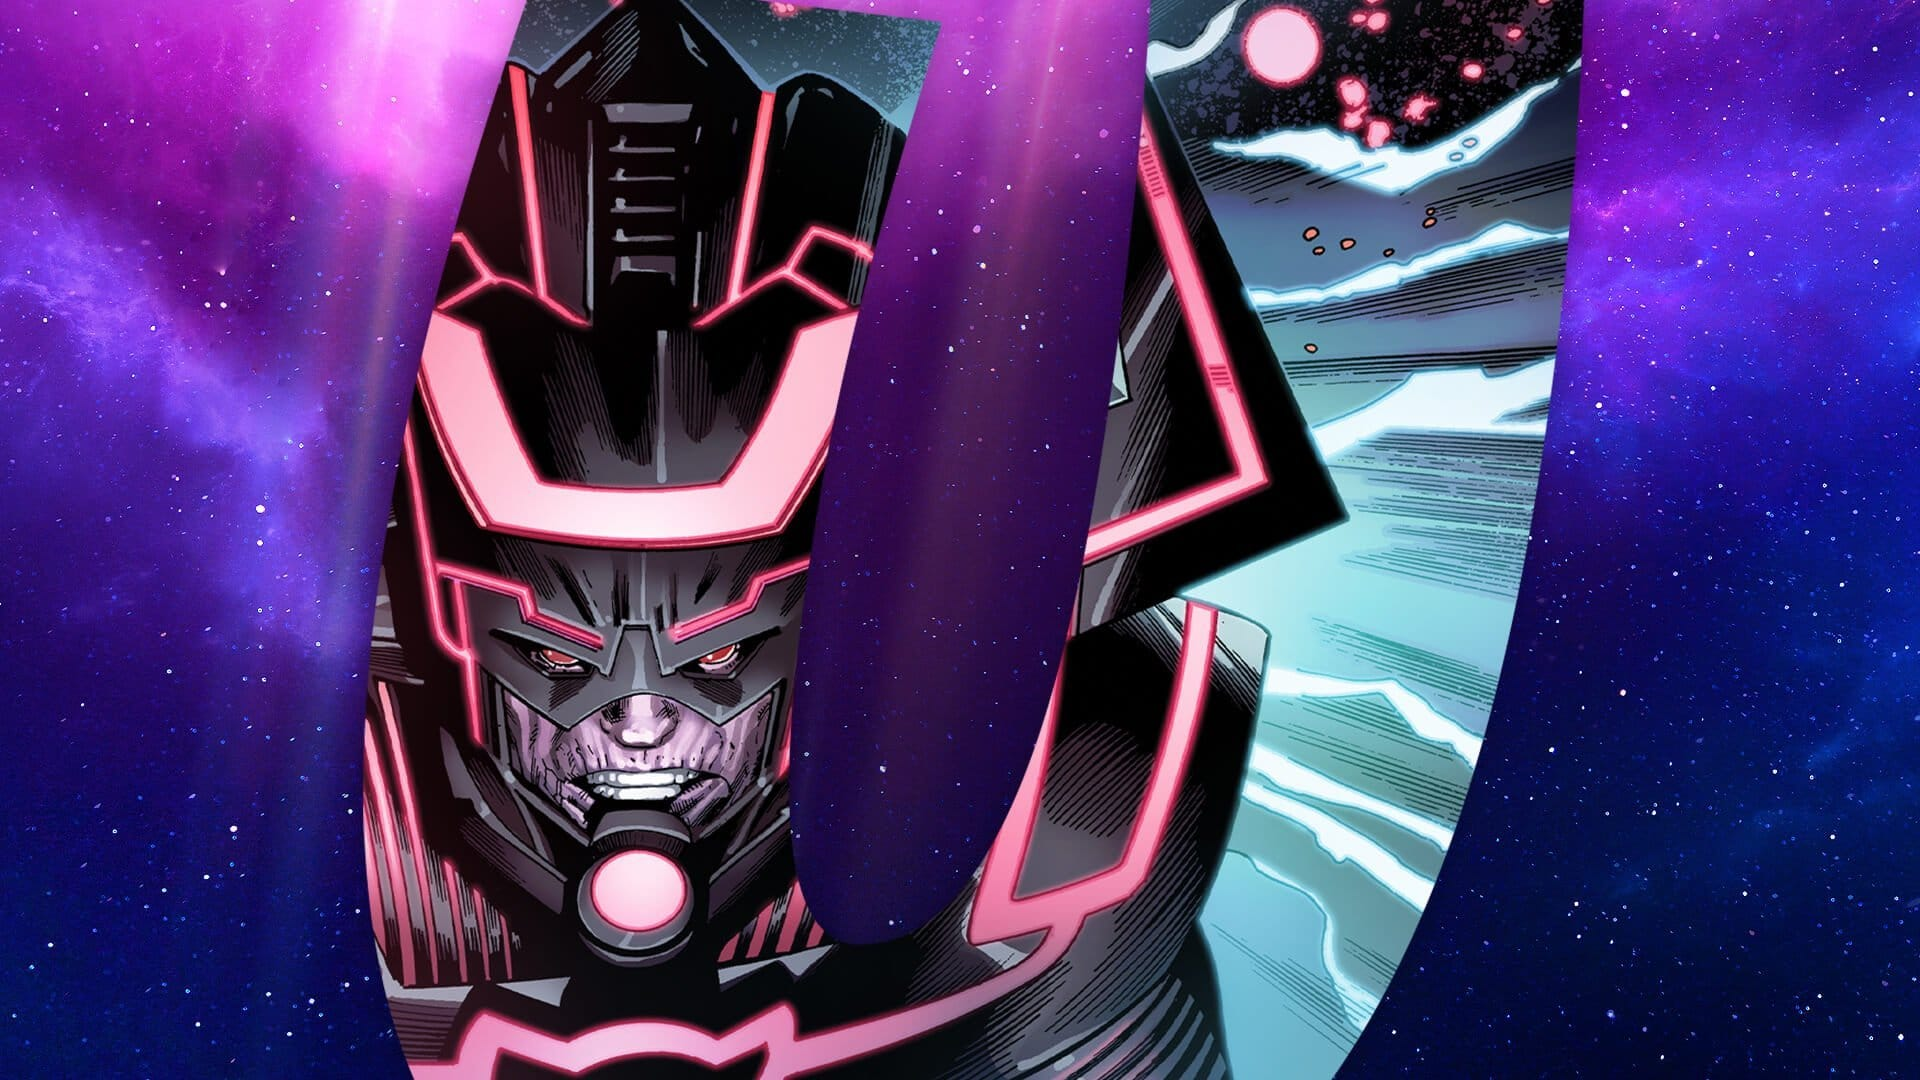 Fortnite Chapter 2 Season 4 Teaser Image Galactus